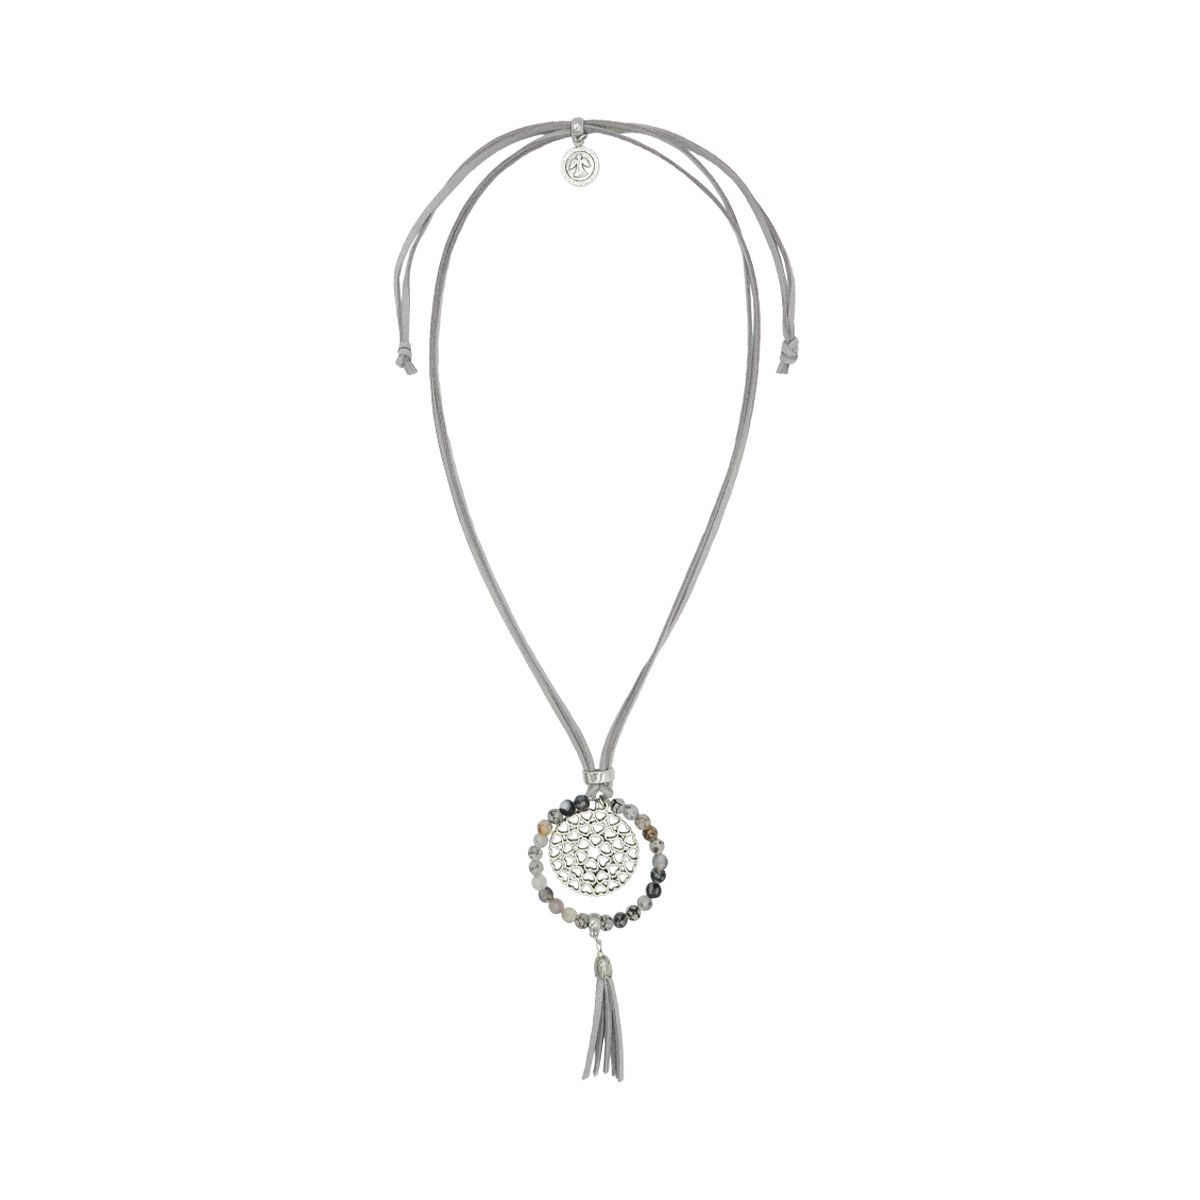 Round Pendant with Tassel Suede Necklace 08230259